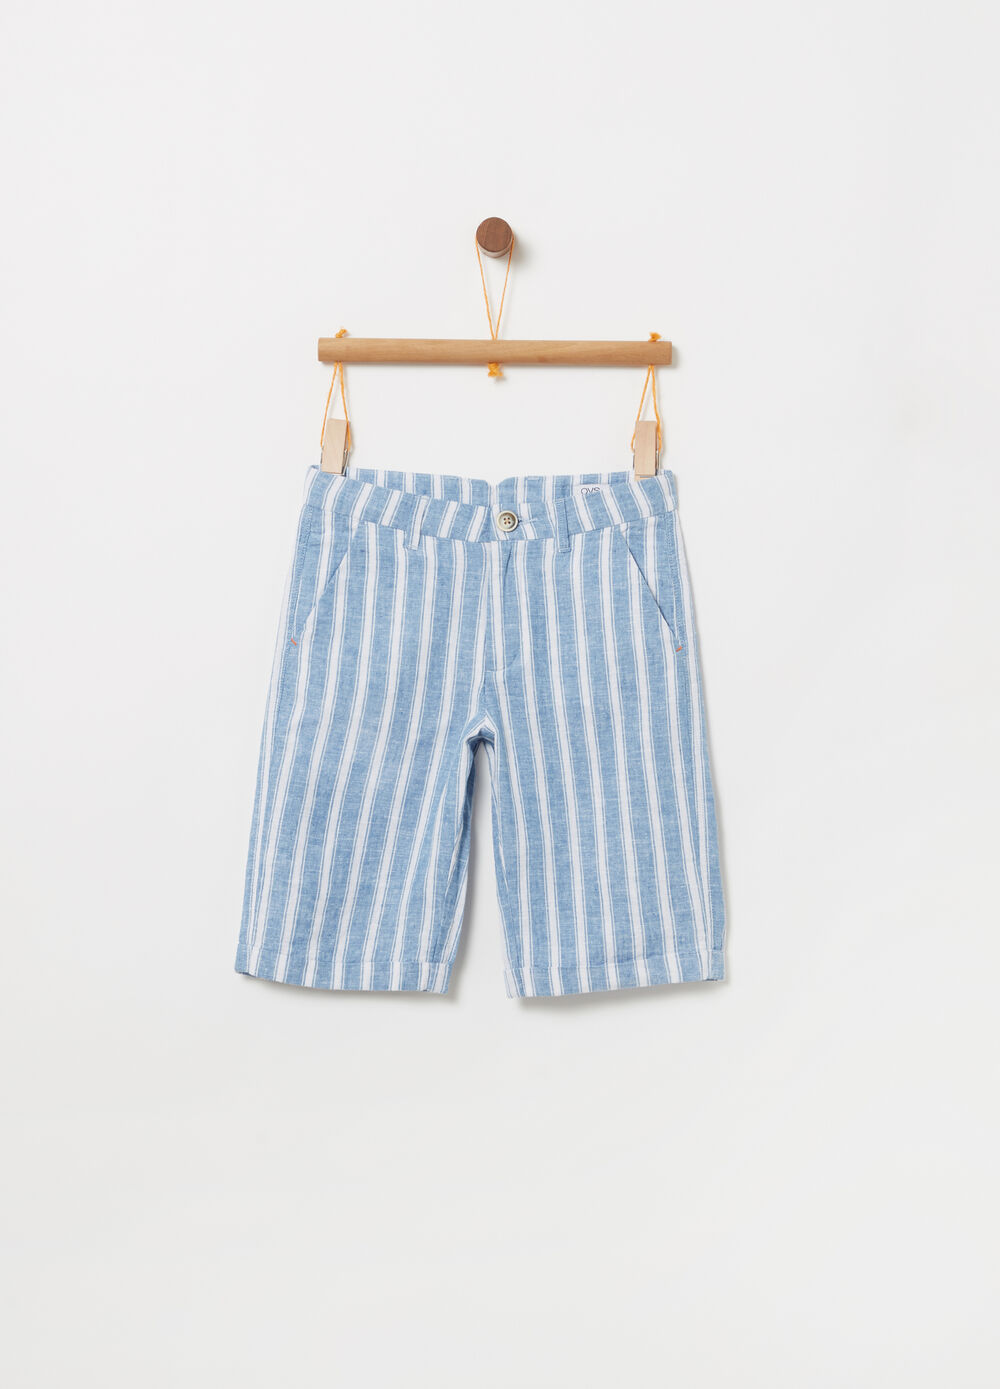 Smart-model shorts with yarn-dyed stripes